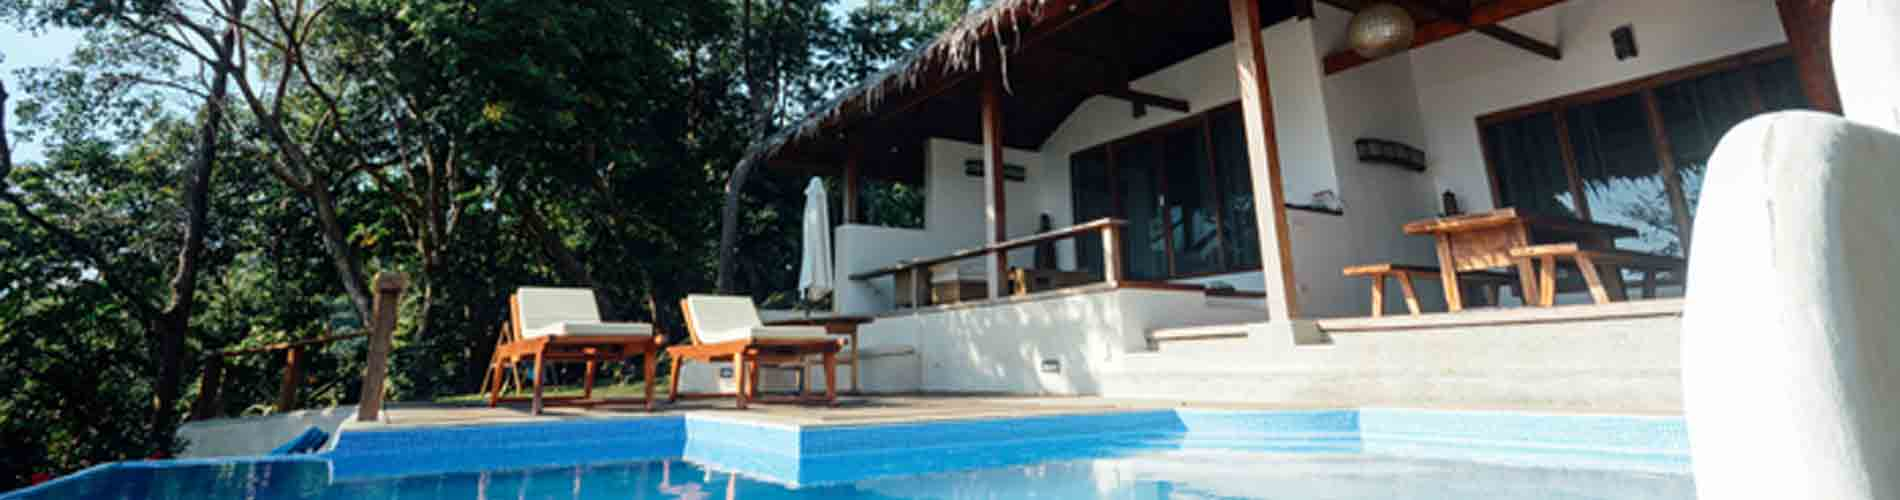 accommodation in el nido